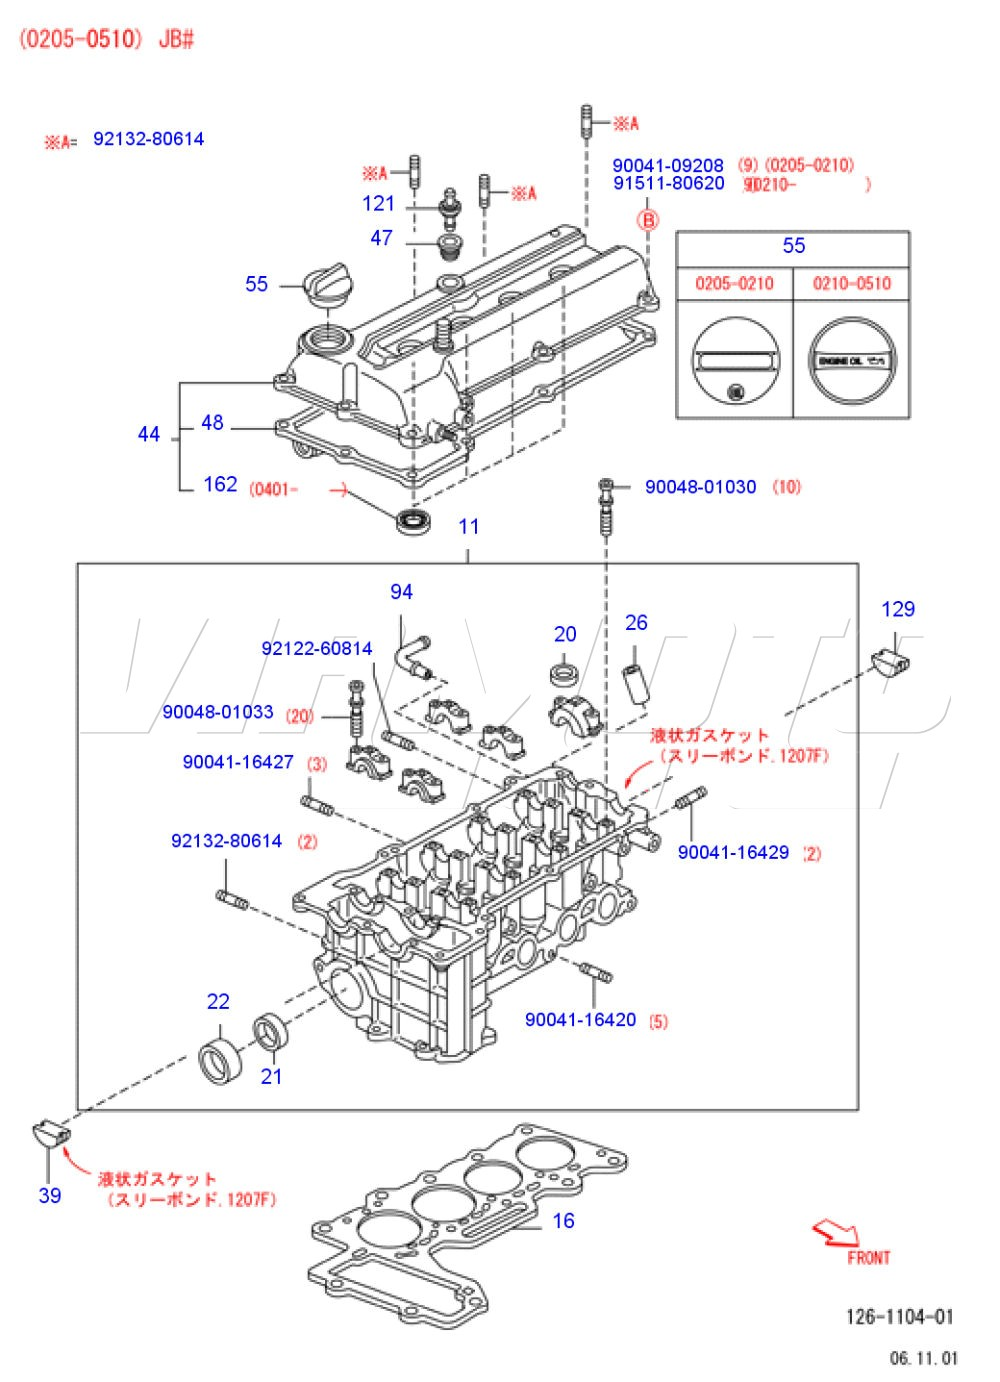 Daihatsu Engine Cooling Diagram | Wiring Liry on grumman llv wiring diagram, acura wiring diagram, corvette wiring diagram, peterbilt trucks wiring diagram, jawa wiring diagram, international truck wiring diagram, puch wiring diagram, chrysler dodge wiring diagram, mgb wiring diagram, volkswagen wiring diagram, can am wiring diagram, avanti wiring diagram, dodge truck wiring diagram, morris minor wiring diagram, merkur wiring diagram, willys wiring diagram, lexus wiring diagram, karmann ghia wiring diagram, bomag wiring diagram,